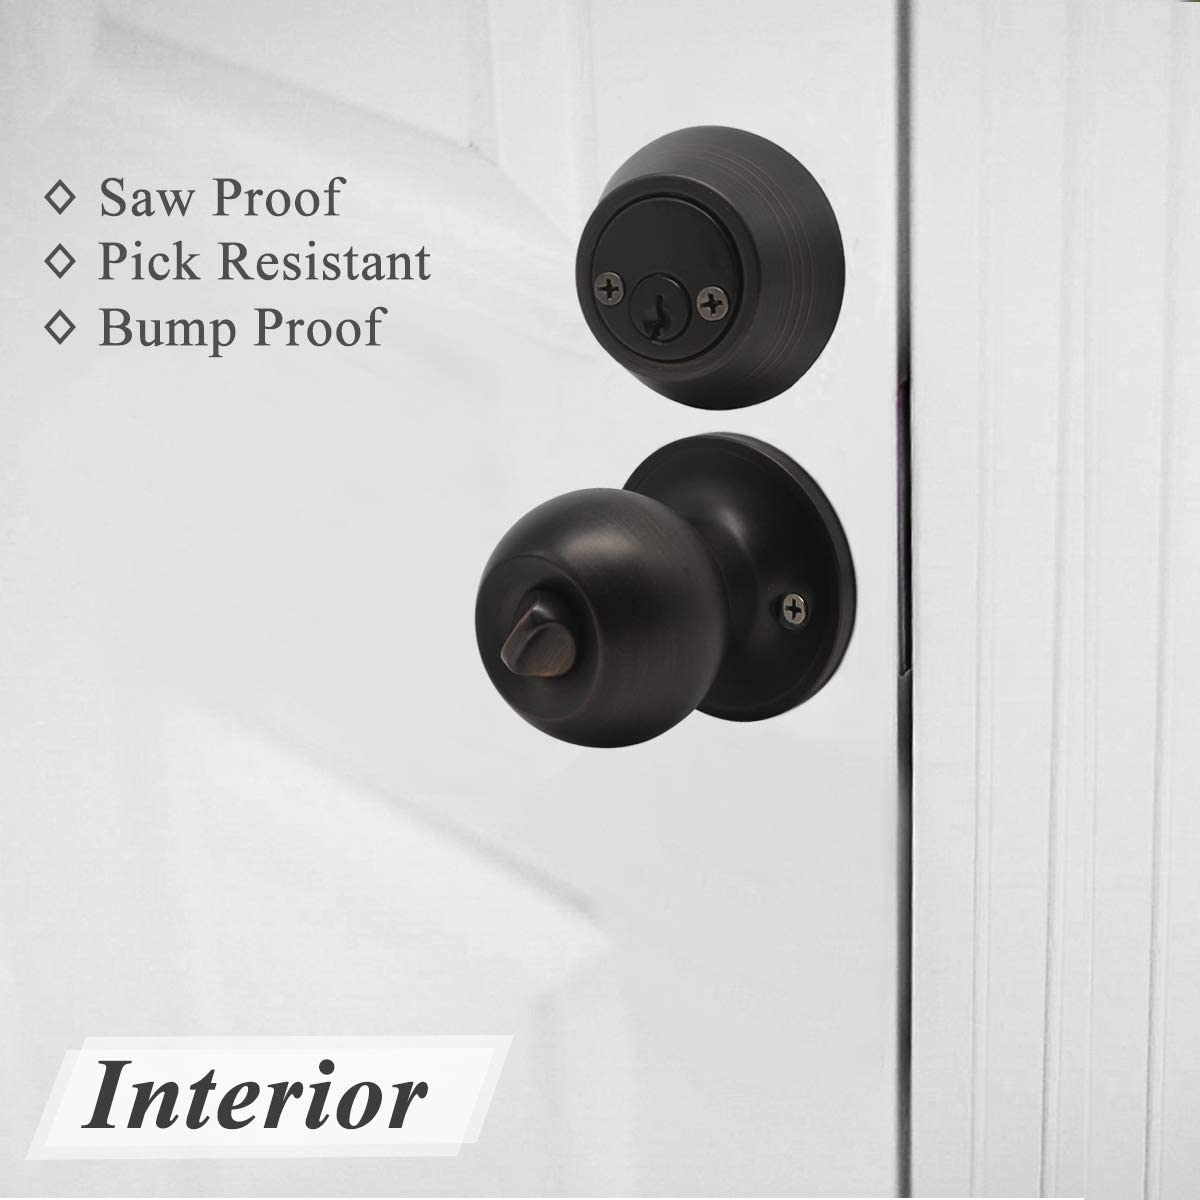 Porobrico 3 Pack Entry Door Knob with Double Cylinder Deadbolt Set Oil Rubbed Bronze Entry Door Lock Set with Key Keyway Front Entry Handleset Lockset Gate Hardware